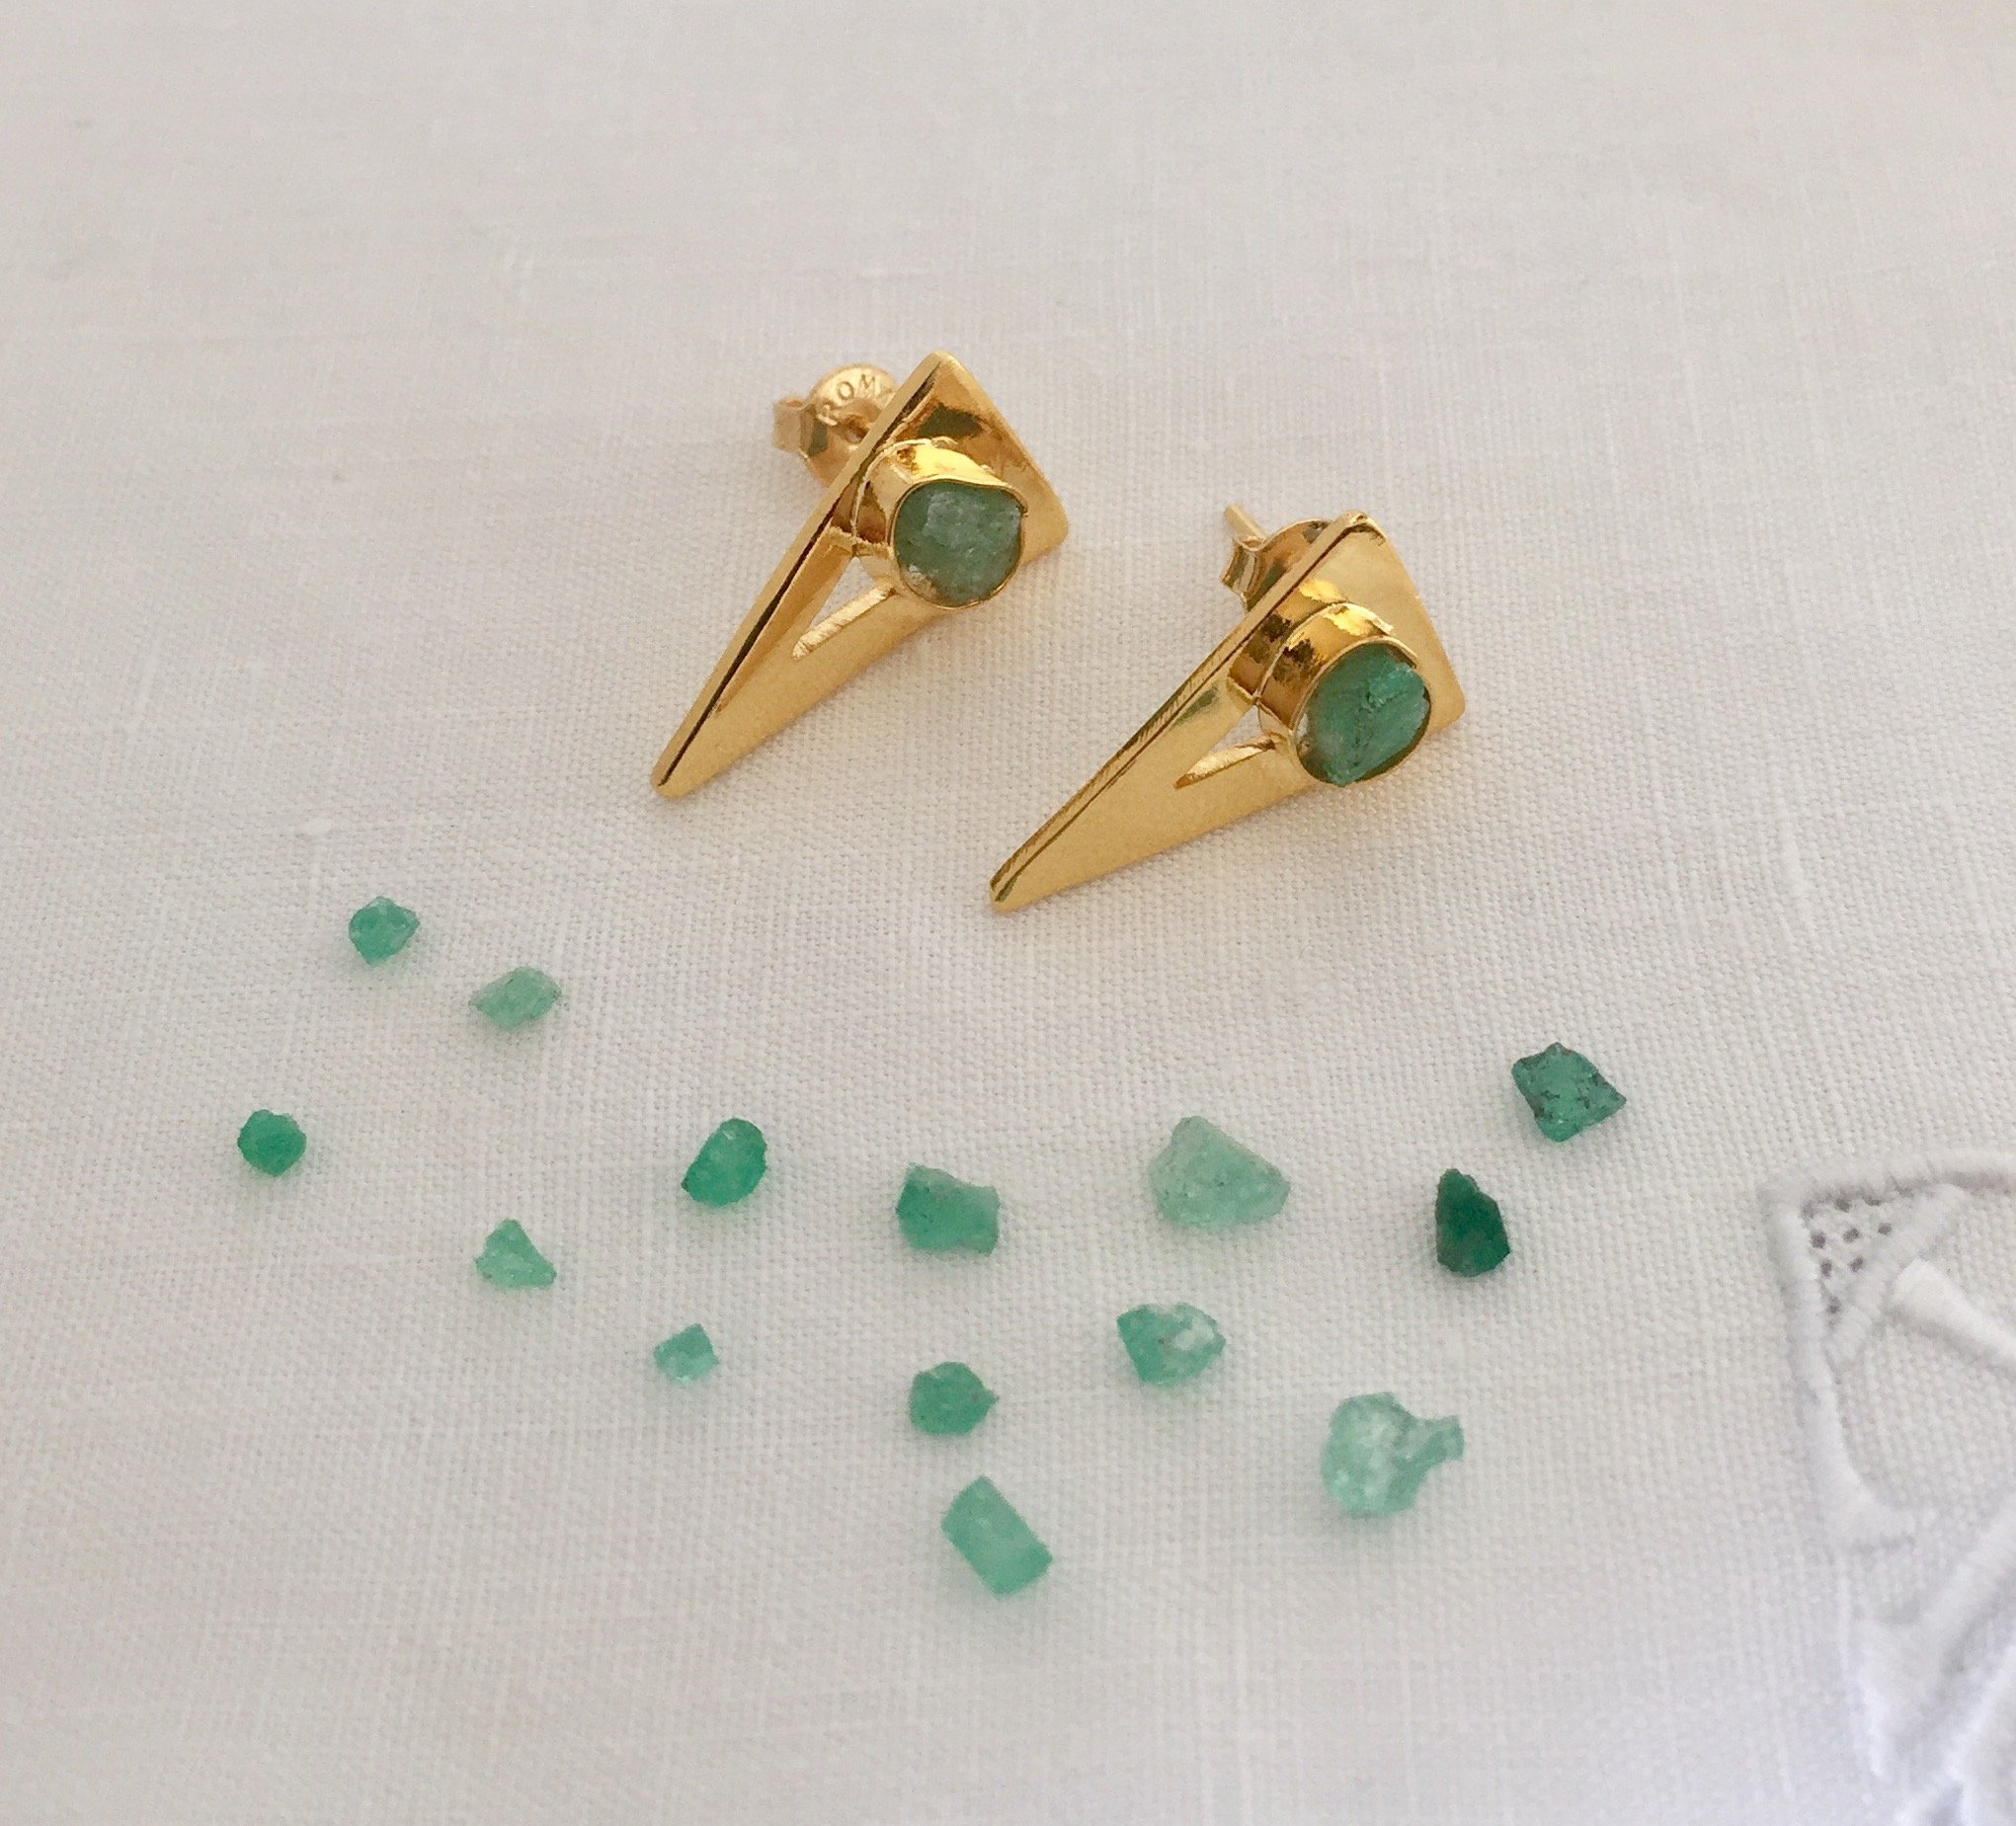 Raw Emerald Stud Earrings by D'Mundo Accesorios . Genuine Raw Colombian Emeralds. Handmade Yellow Gold Plated Triangles Earrings.